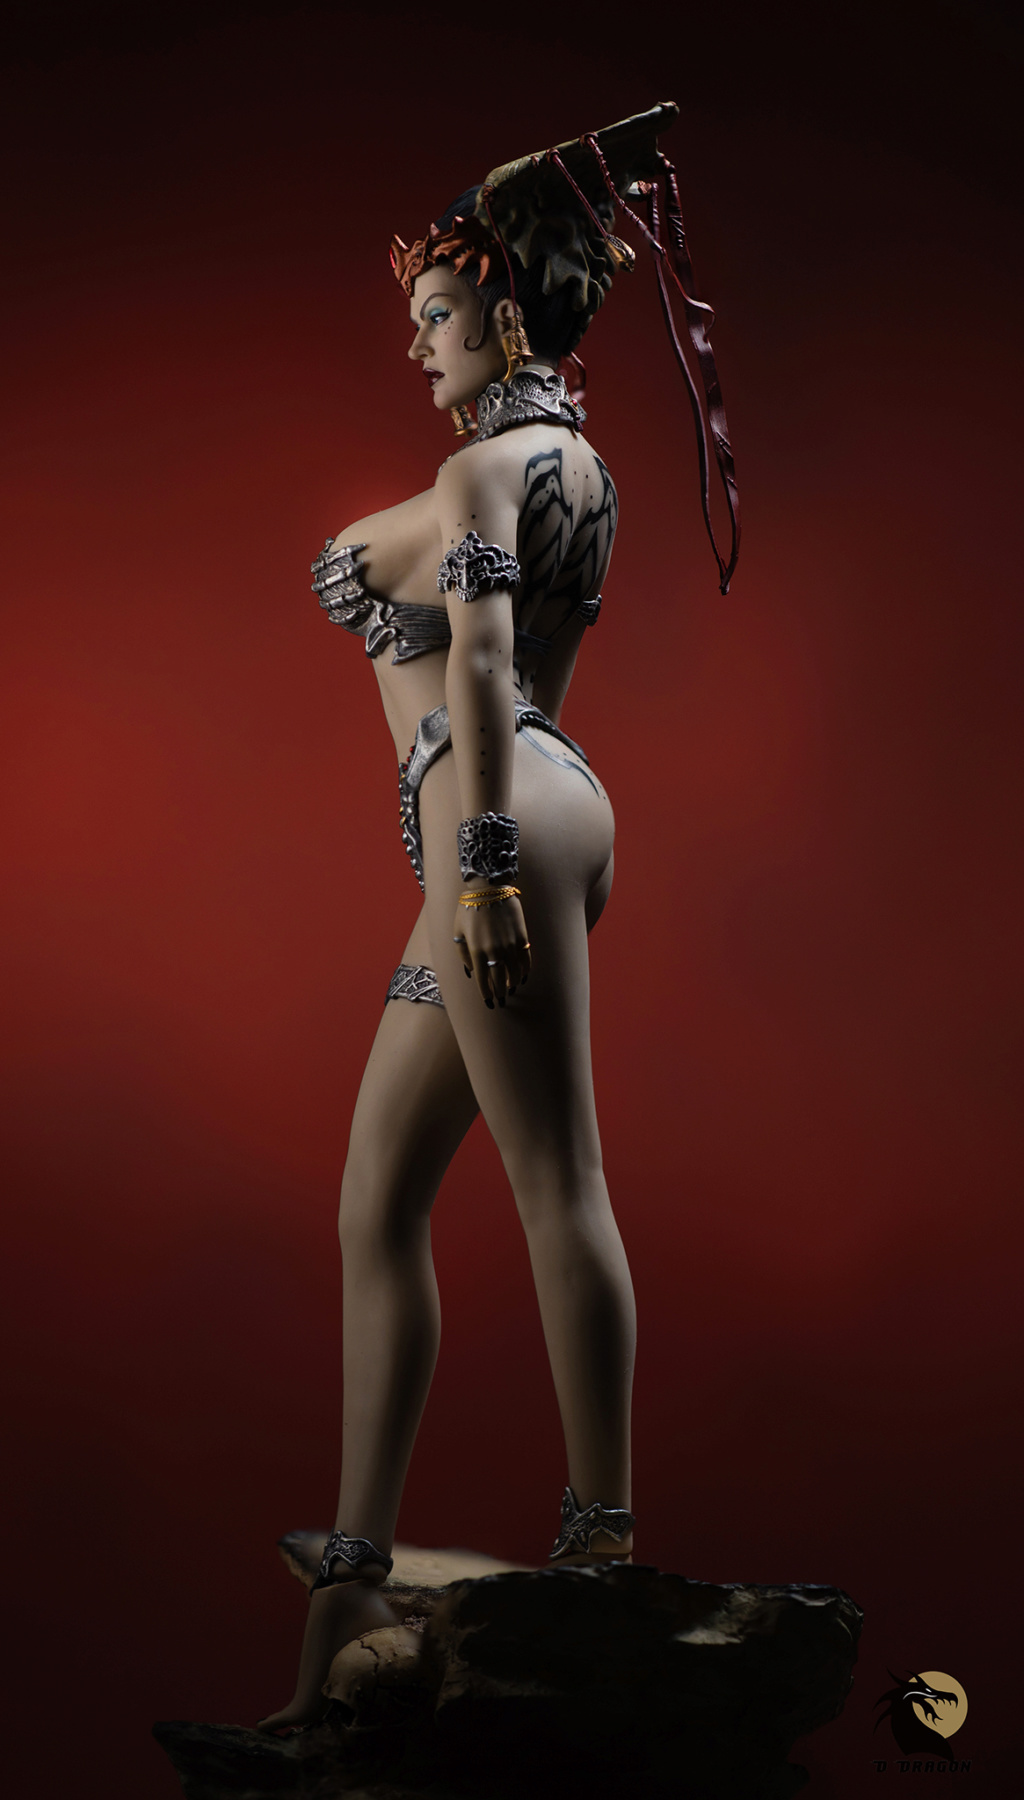 tbleague - NEW PRODUCT: Tbleague x SIDESHOW New: 1/6 Court of the Dead: Gethsemoni The Dead Queen action figure (PL2019-147) - Page 2 Gethse20